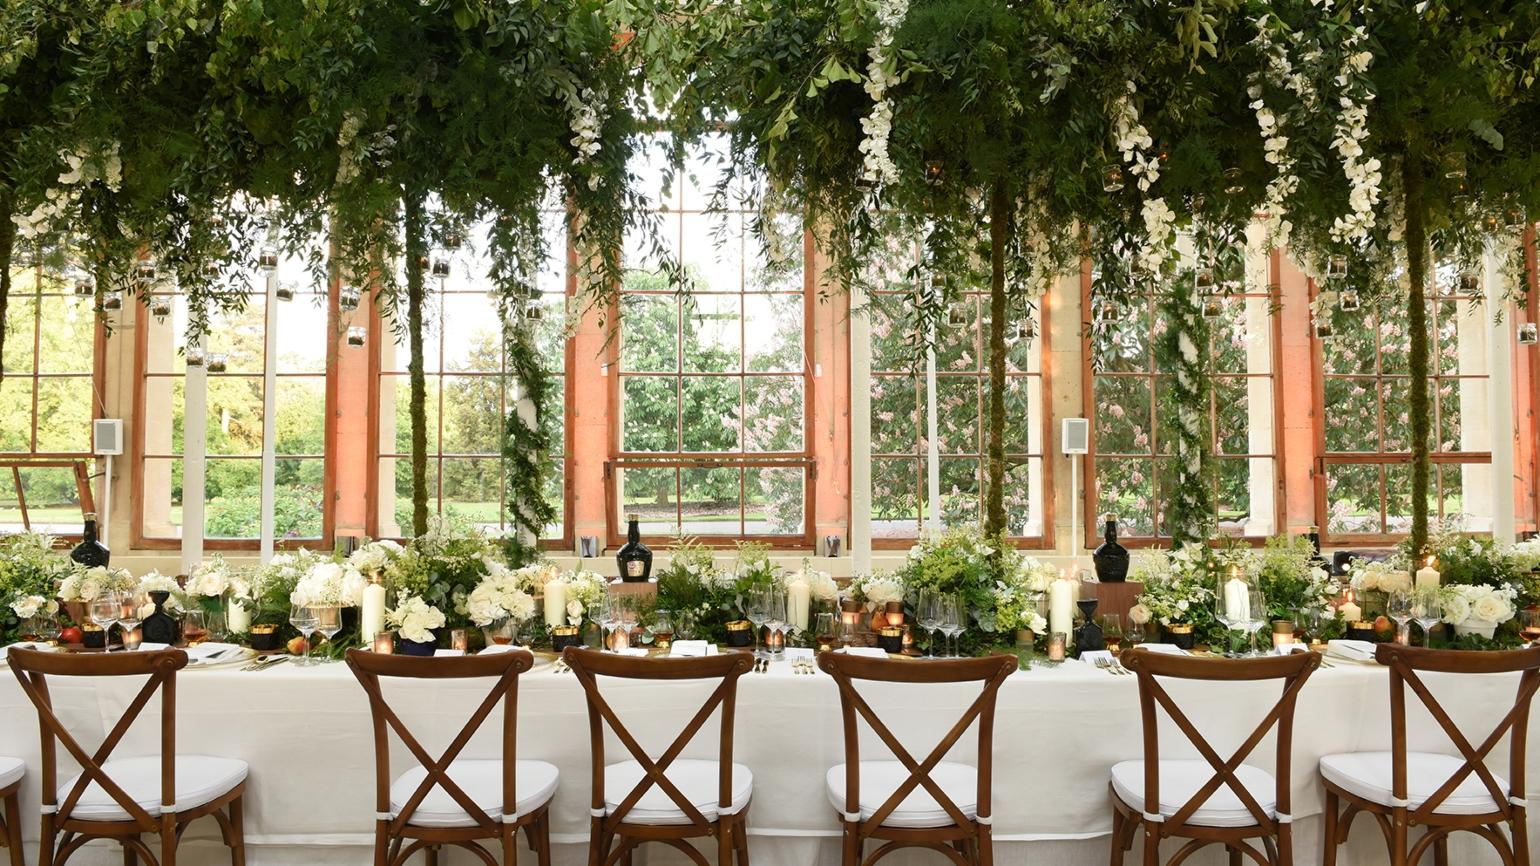 Table, chairs and flowers beautifully laid out in the Nash Conservatory for a wedding